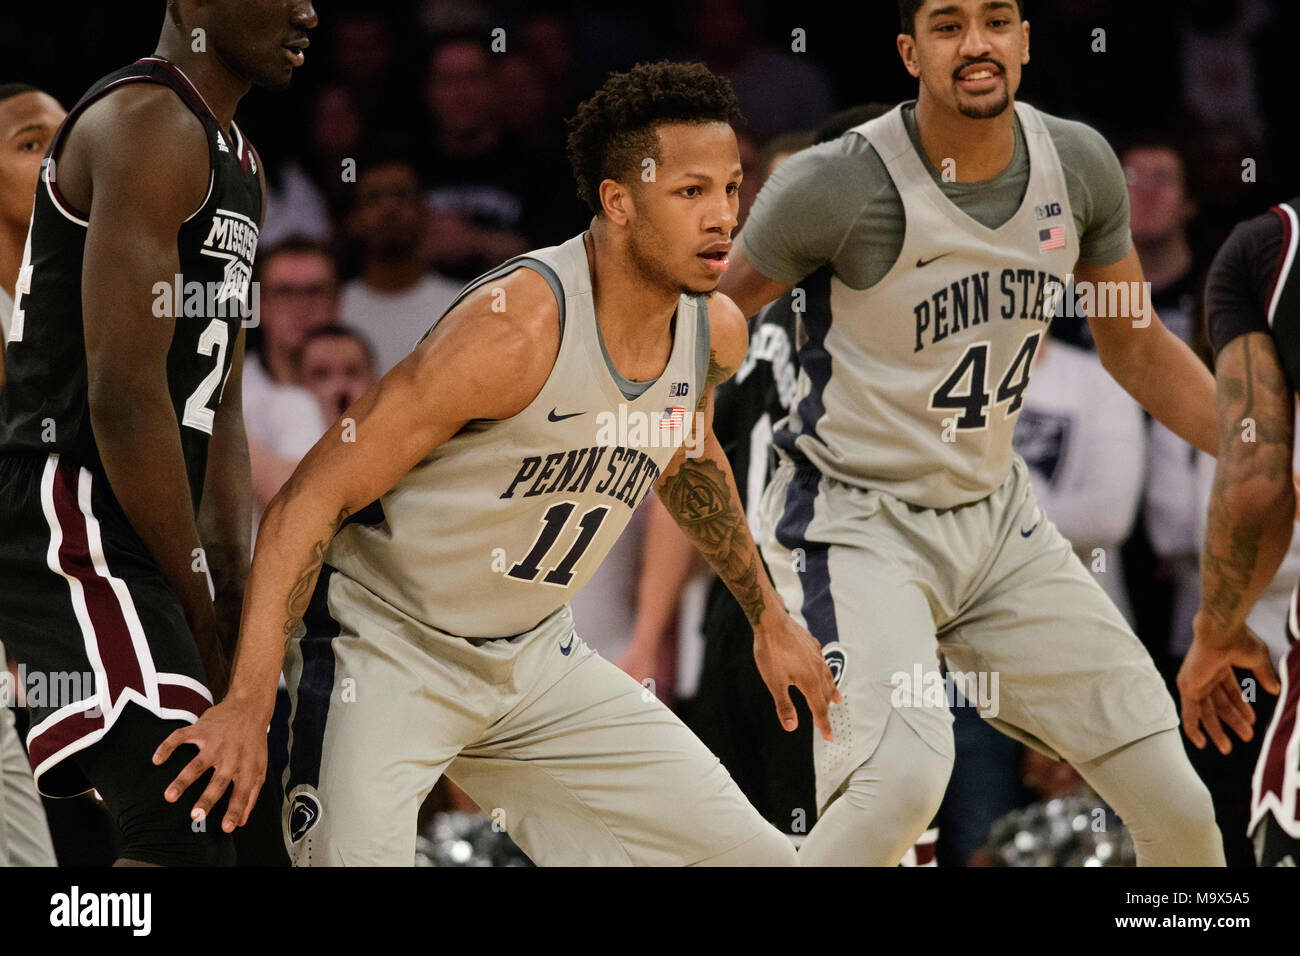 March 27, 2018: at the semi-final of the NIT Tournament game between ...